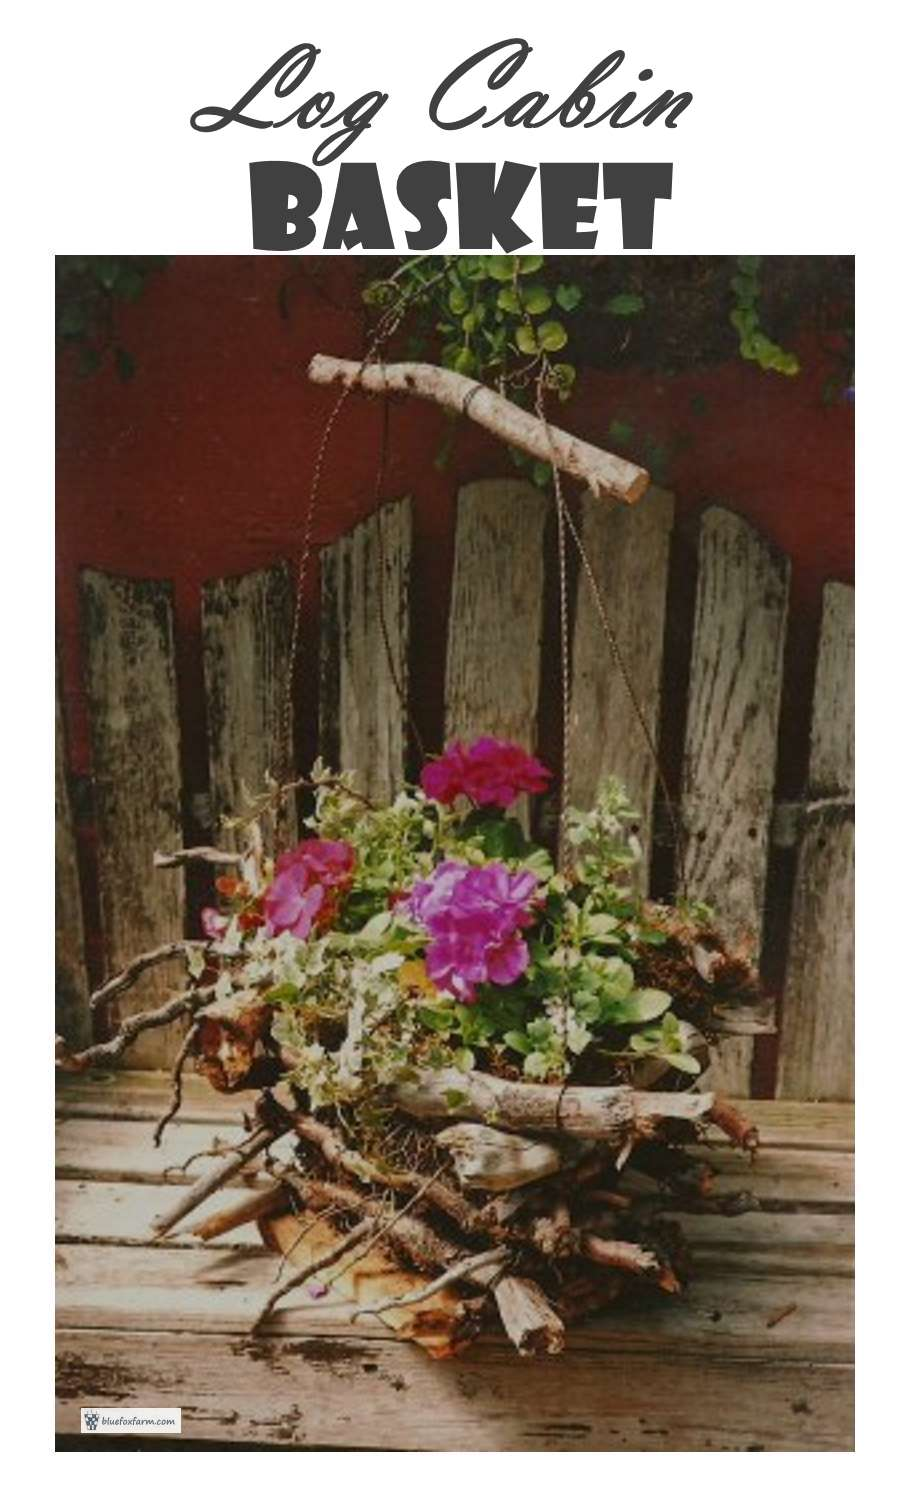 Planted with brightly colored annuals to complement the rustic twigs and roots